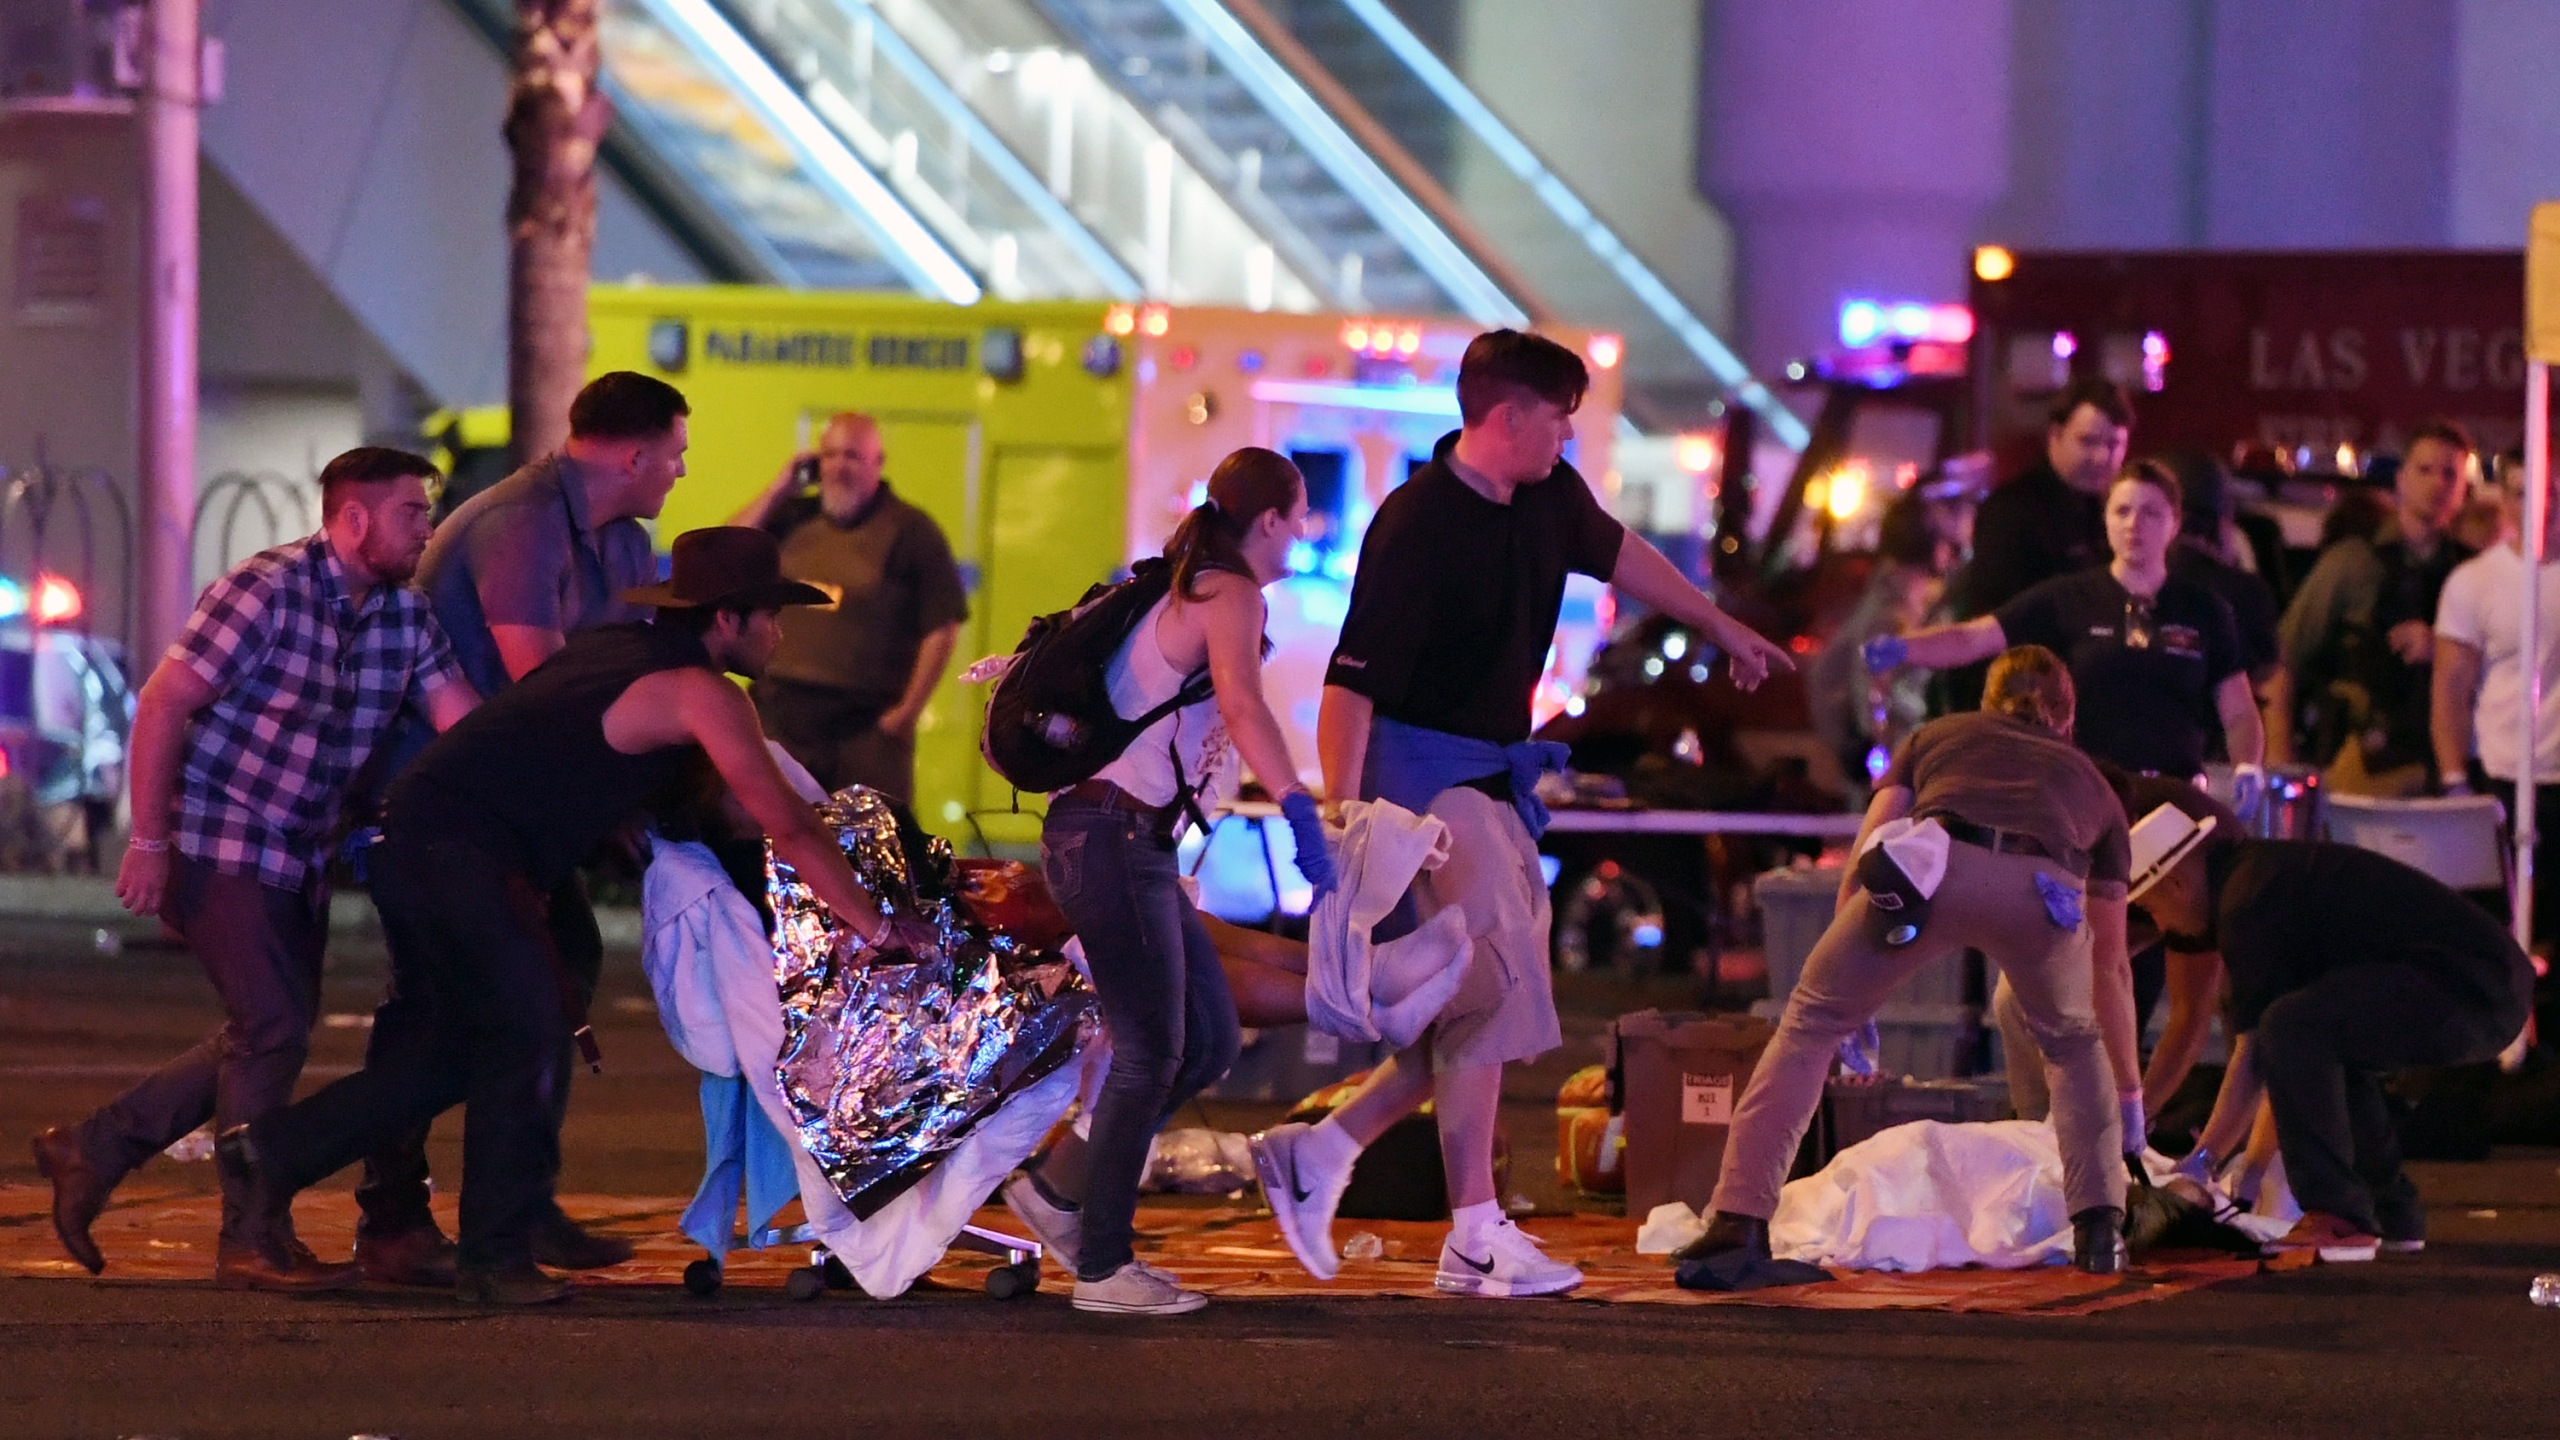 An injured person is tended to in the intersection of Tropicana Ave. and Las Vegas Boulevard after a mass shooting at a country music festival nearby on Oct. 2, 2017 in Las Vegas, Nevada. (Credit: Ethan Miller/Getty Images)